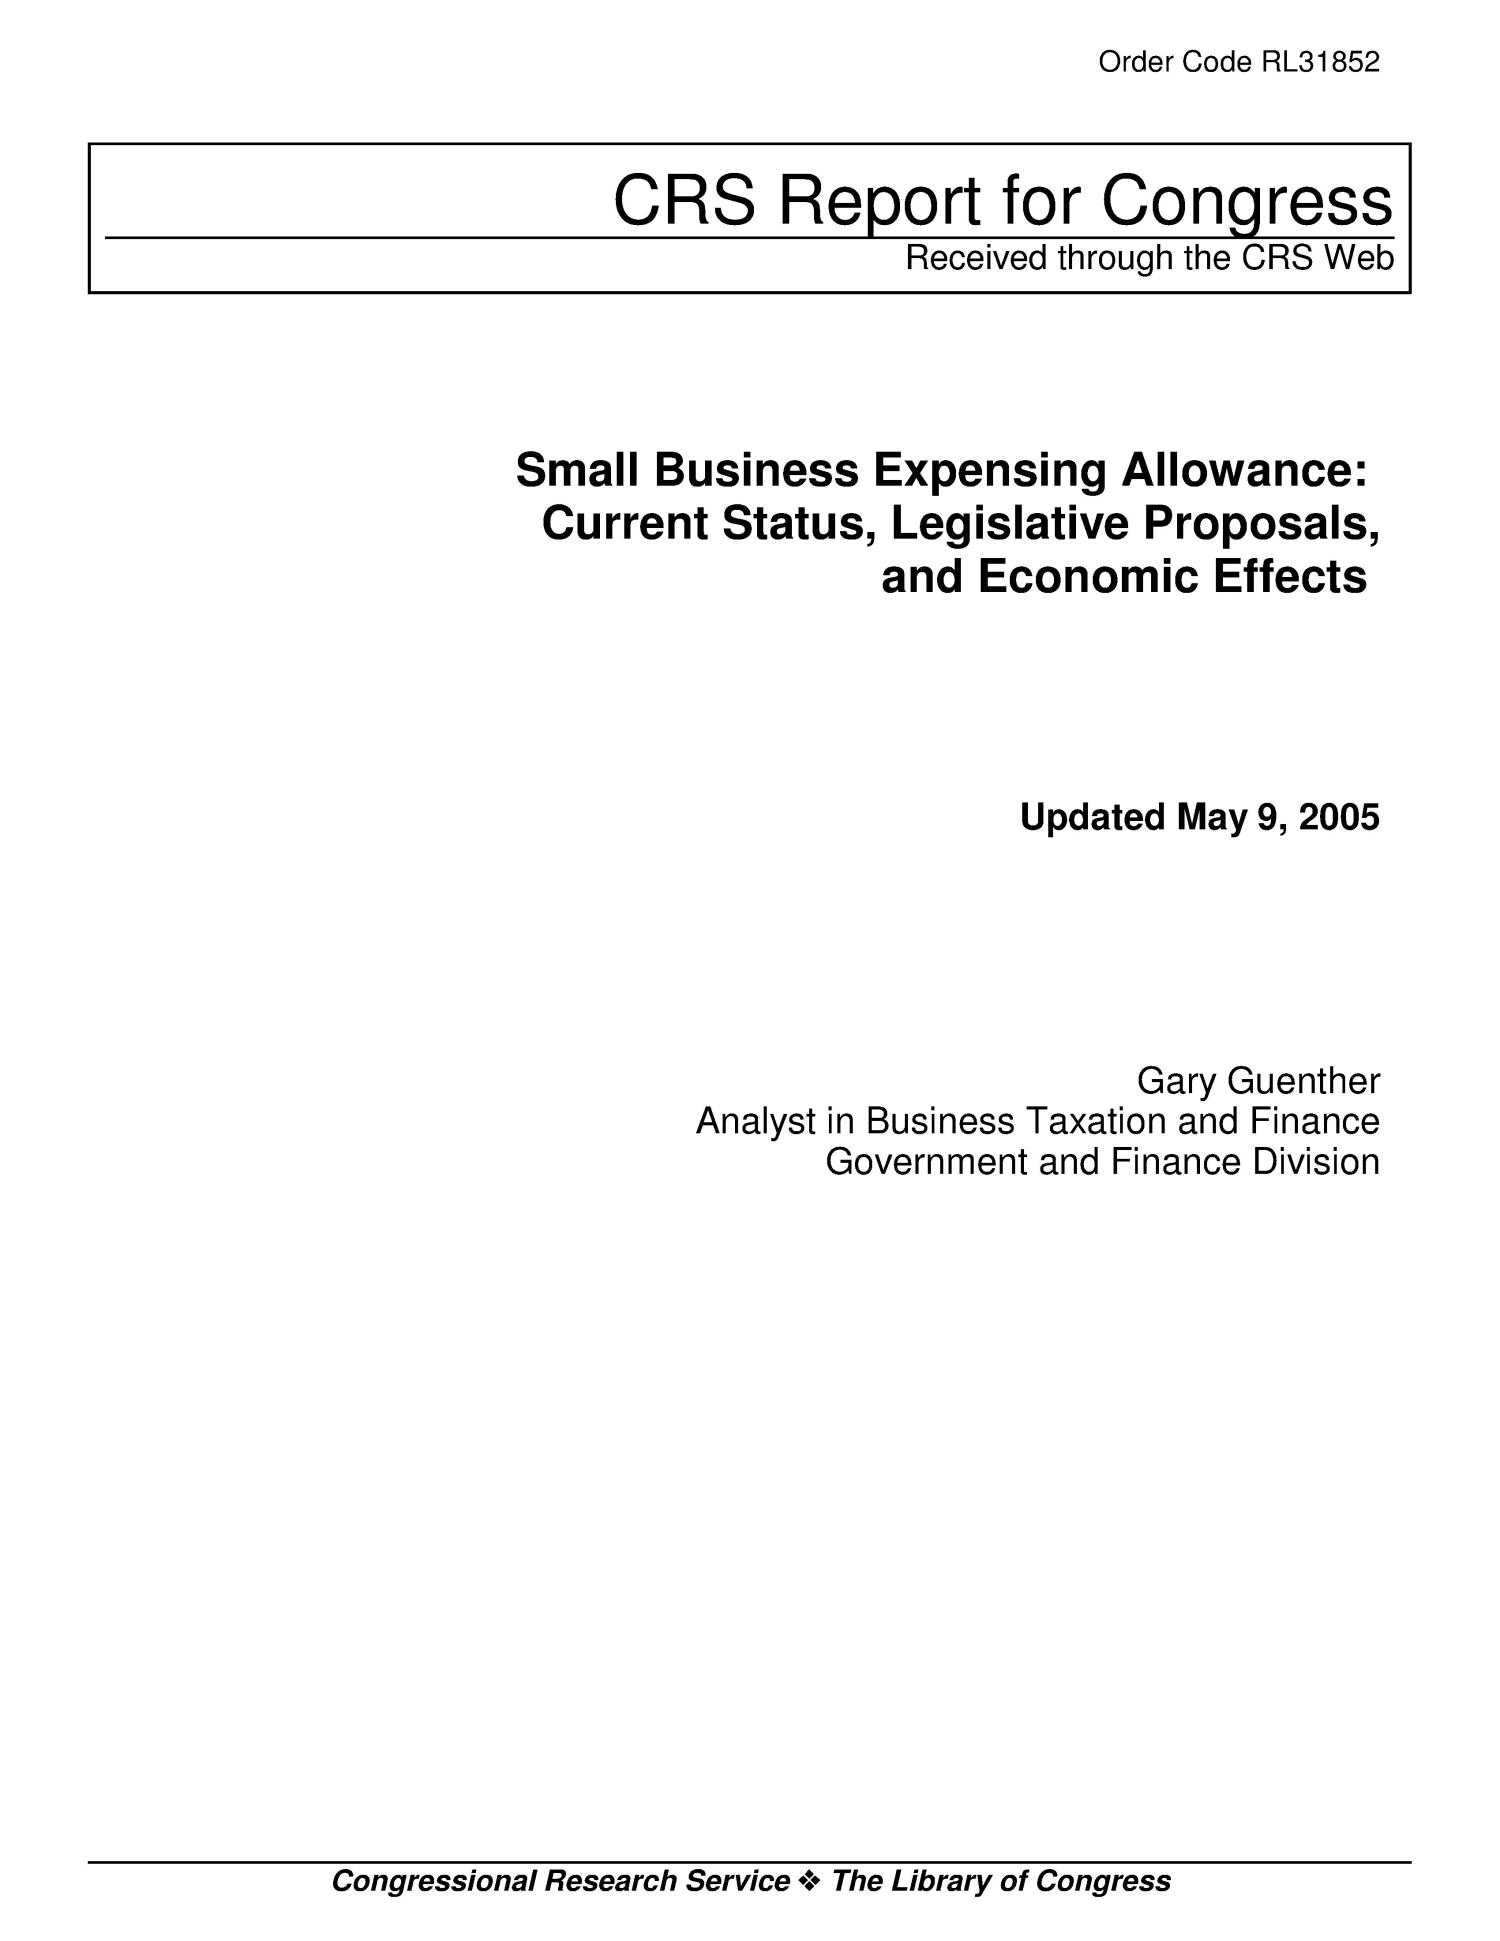 Small Business Expensing Allowance: Current Status, Legislative Proposals, and Economic Effects                                                                                                      [Sequence #]: 1 of 14